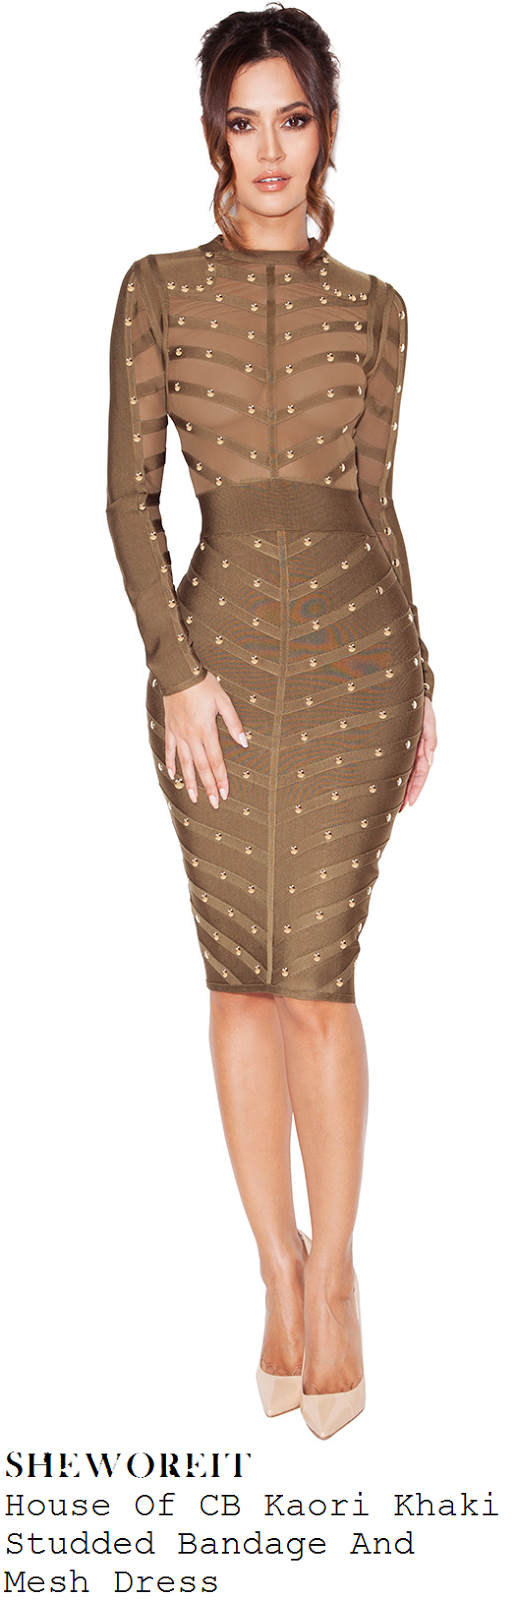 carmen-electra-khaki-gold-studded-long-sleeve-bandage-dress